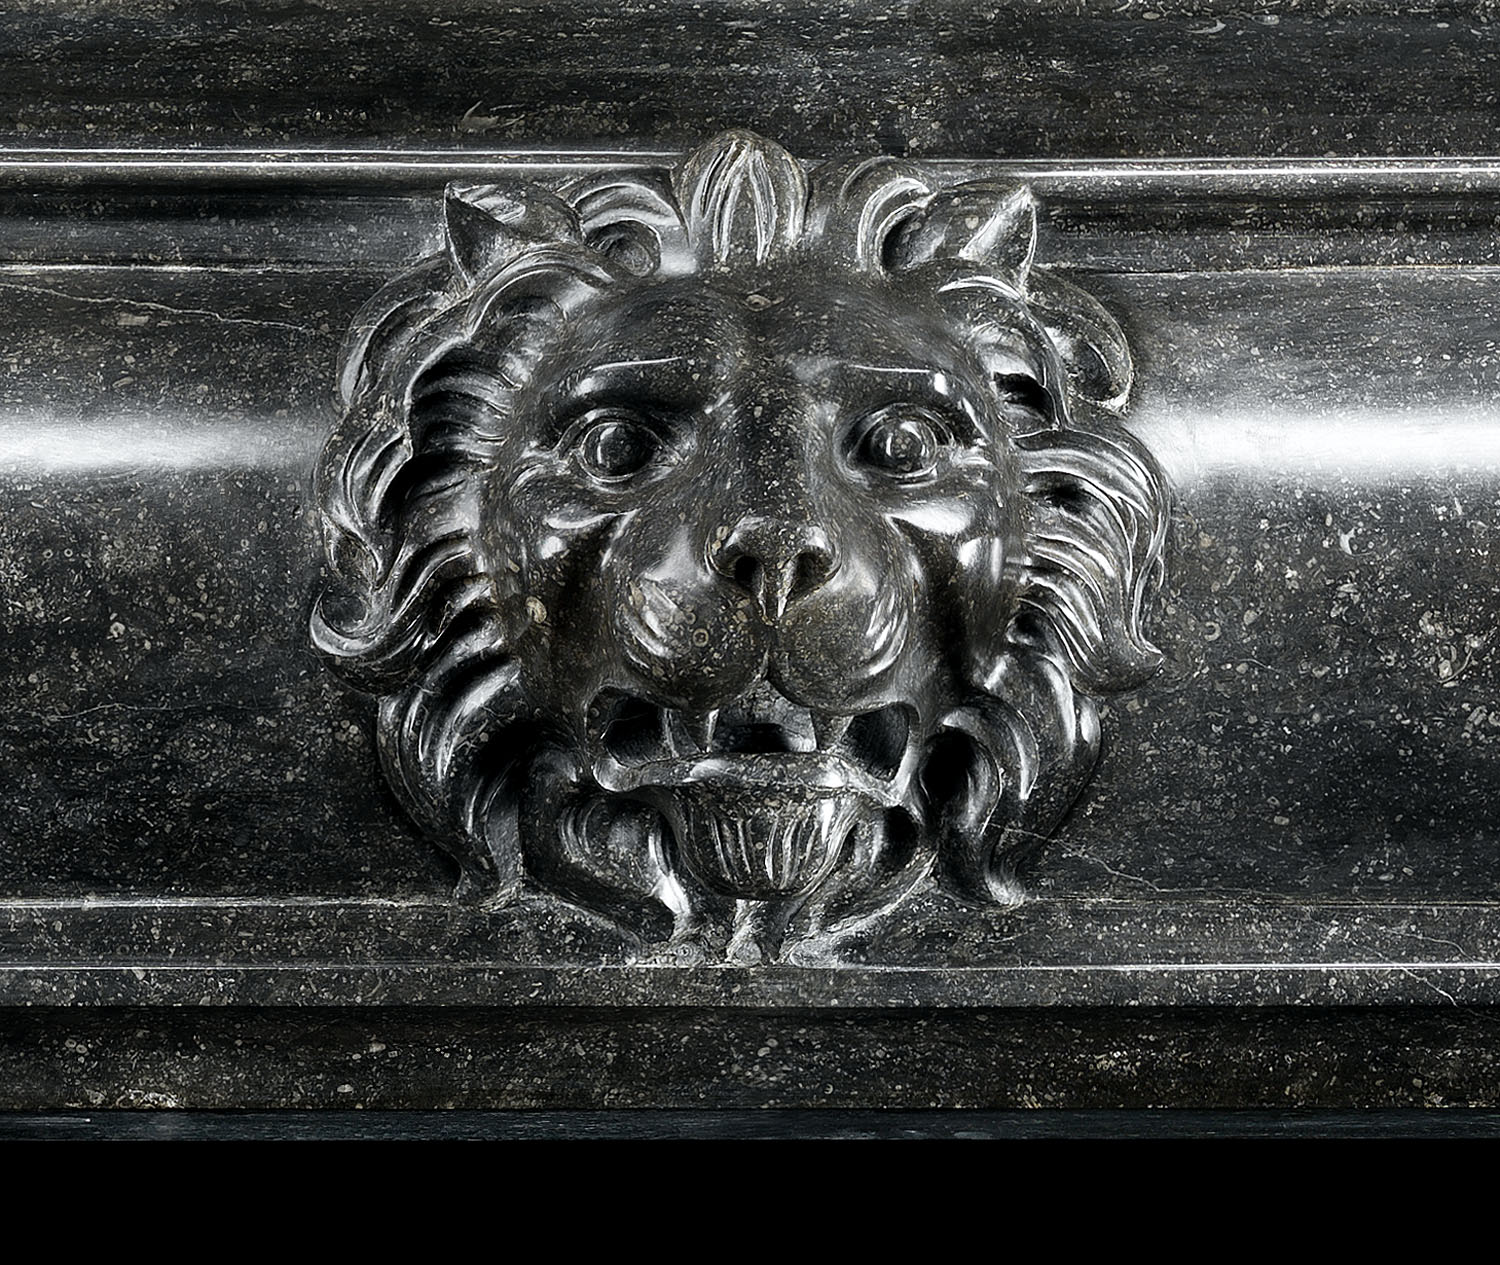 Antique Flemish dark fossil stone baroque Mannerist fireplace mantle This grand Flemish Baroque chimneypiece has double contra scrolling tapering jambs which culminate in lion paws. These support a barrelled integral shelf and frieze which is centered by a magnificent lion's mask. 16th century and later.